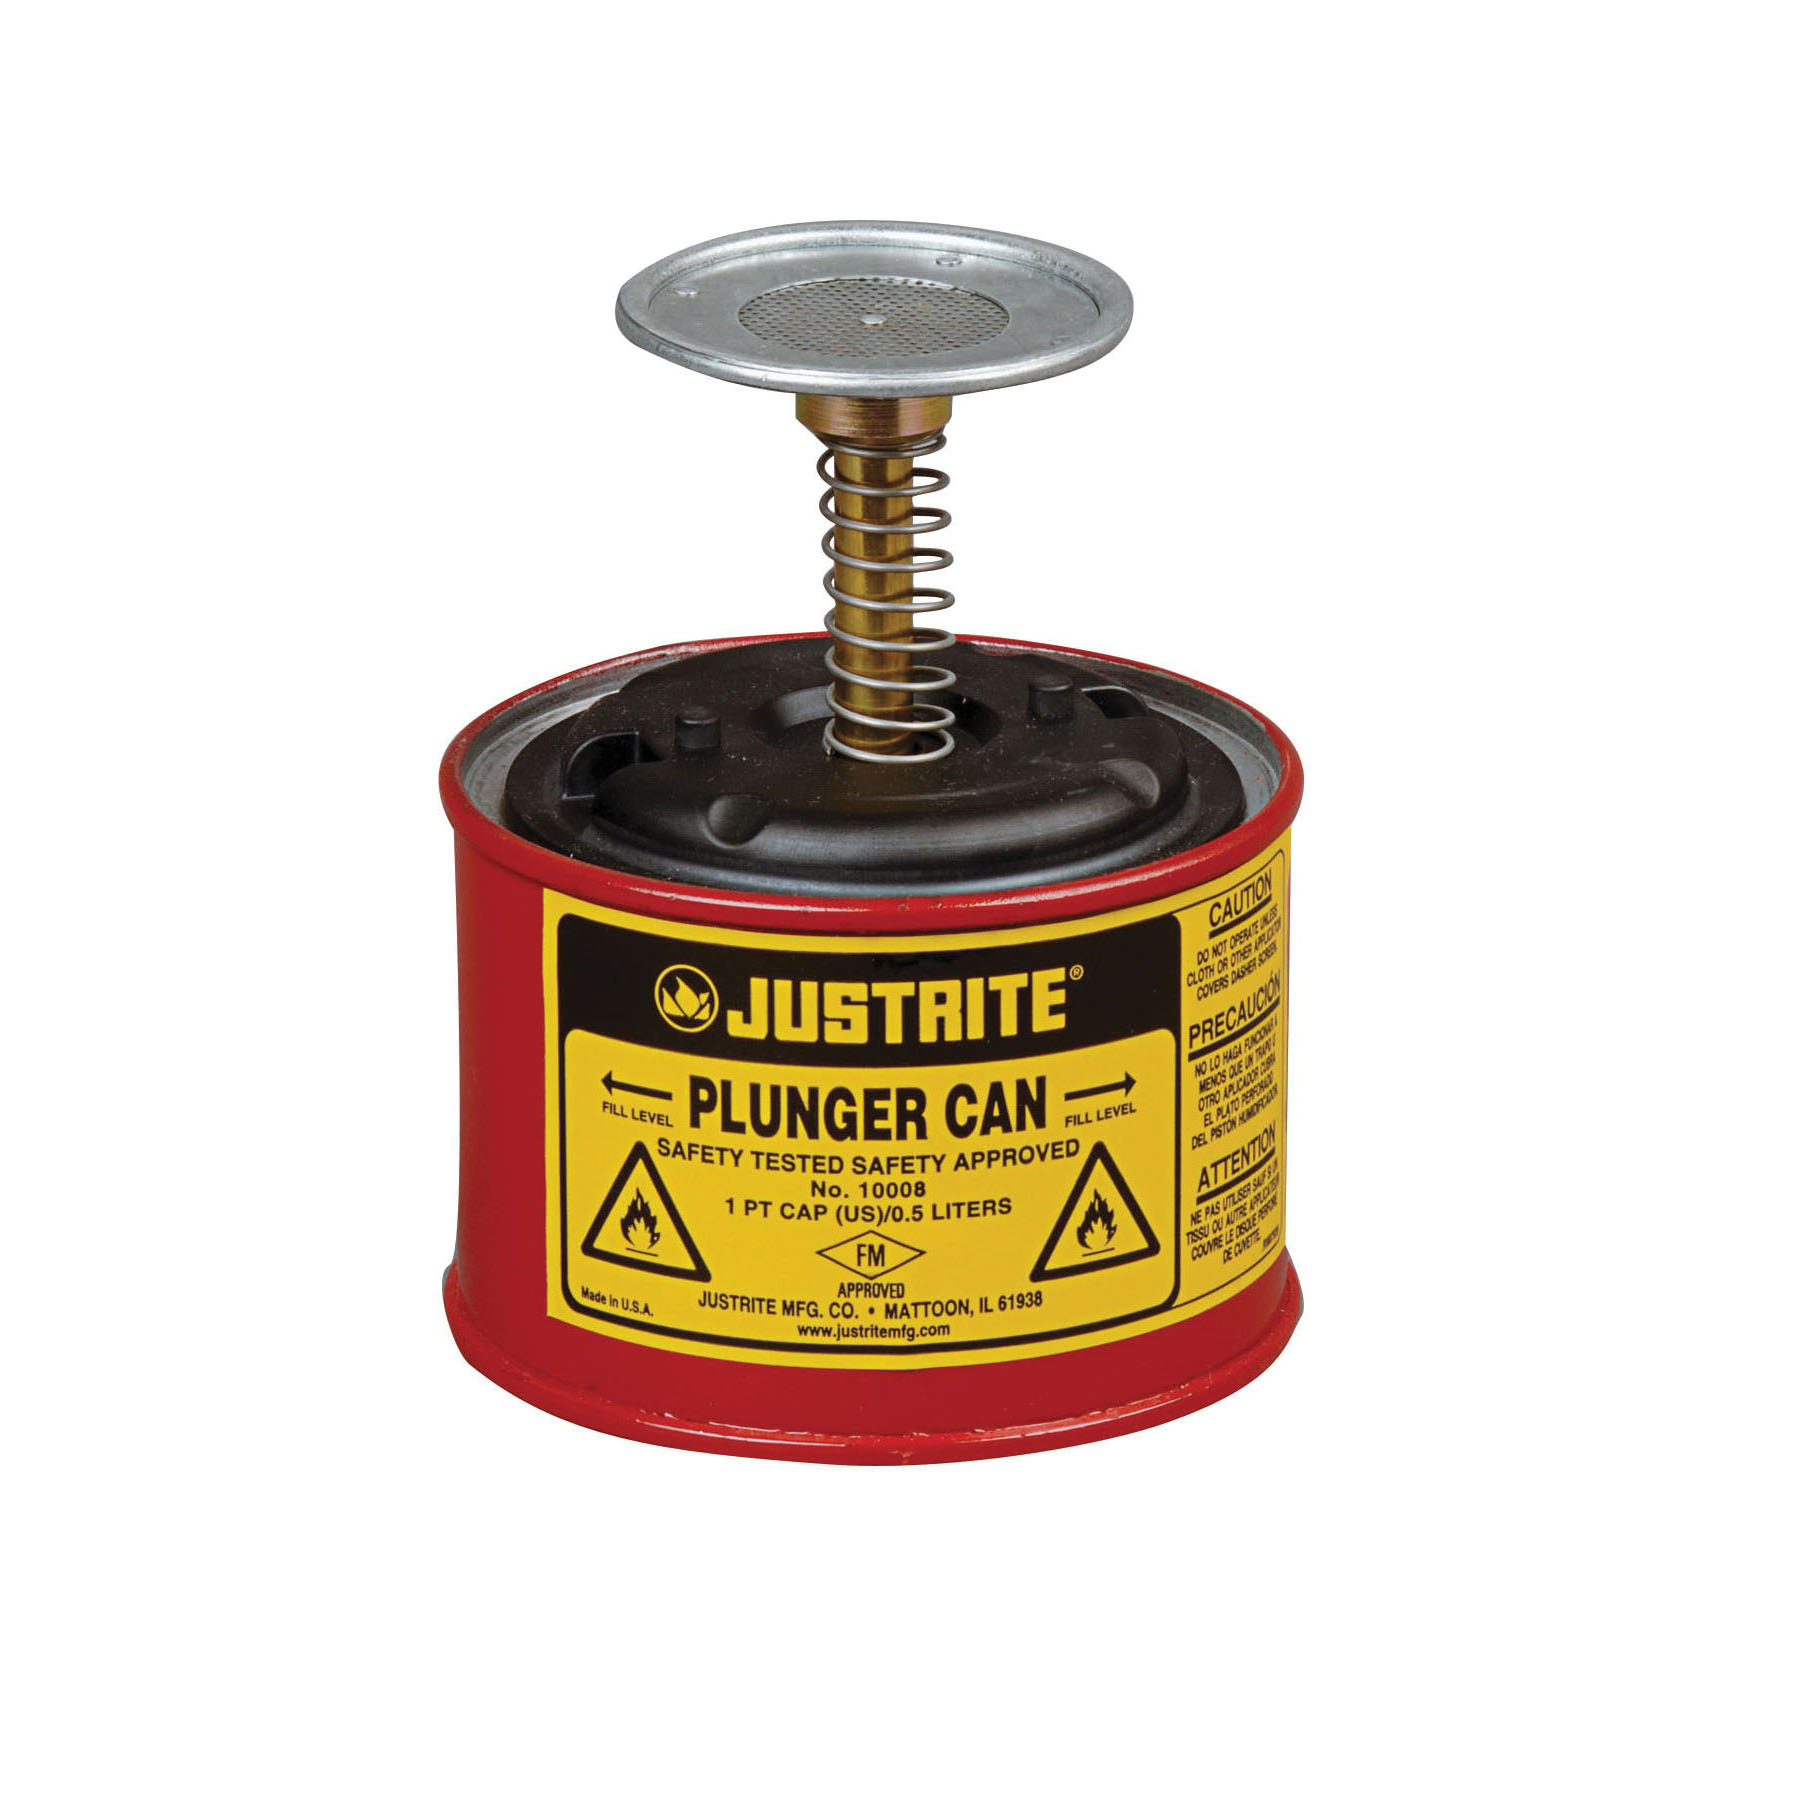 Justrite® 10008 Plunger Dispensing Can, 1 pt, Steel, Red, Brass/Ryton® Plunger, 2-3/4 in Dia Dasher Plate